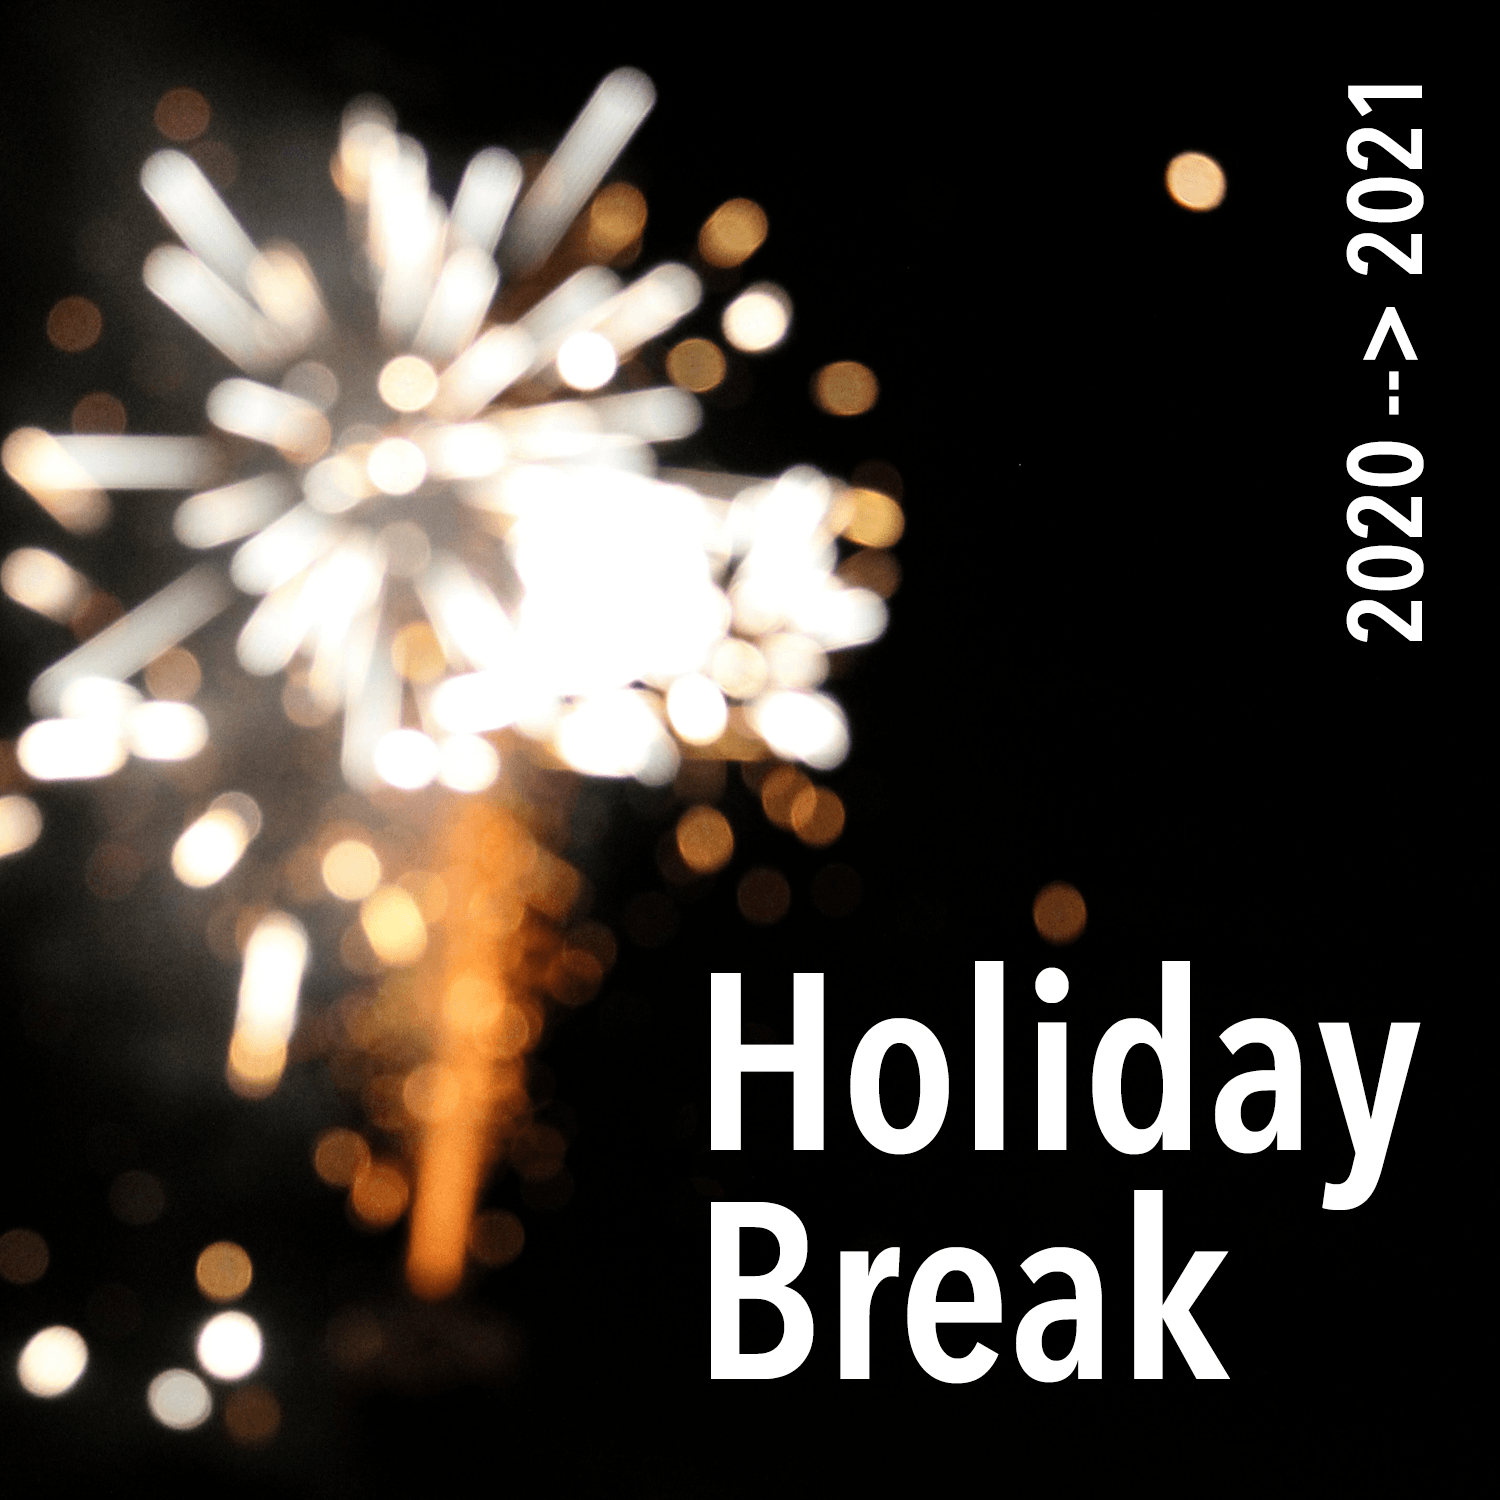 Holiday Break hours, Photo by Siora Photography, Unsplashed